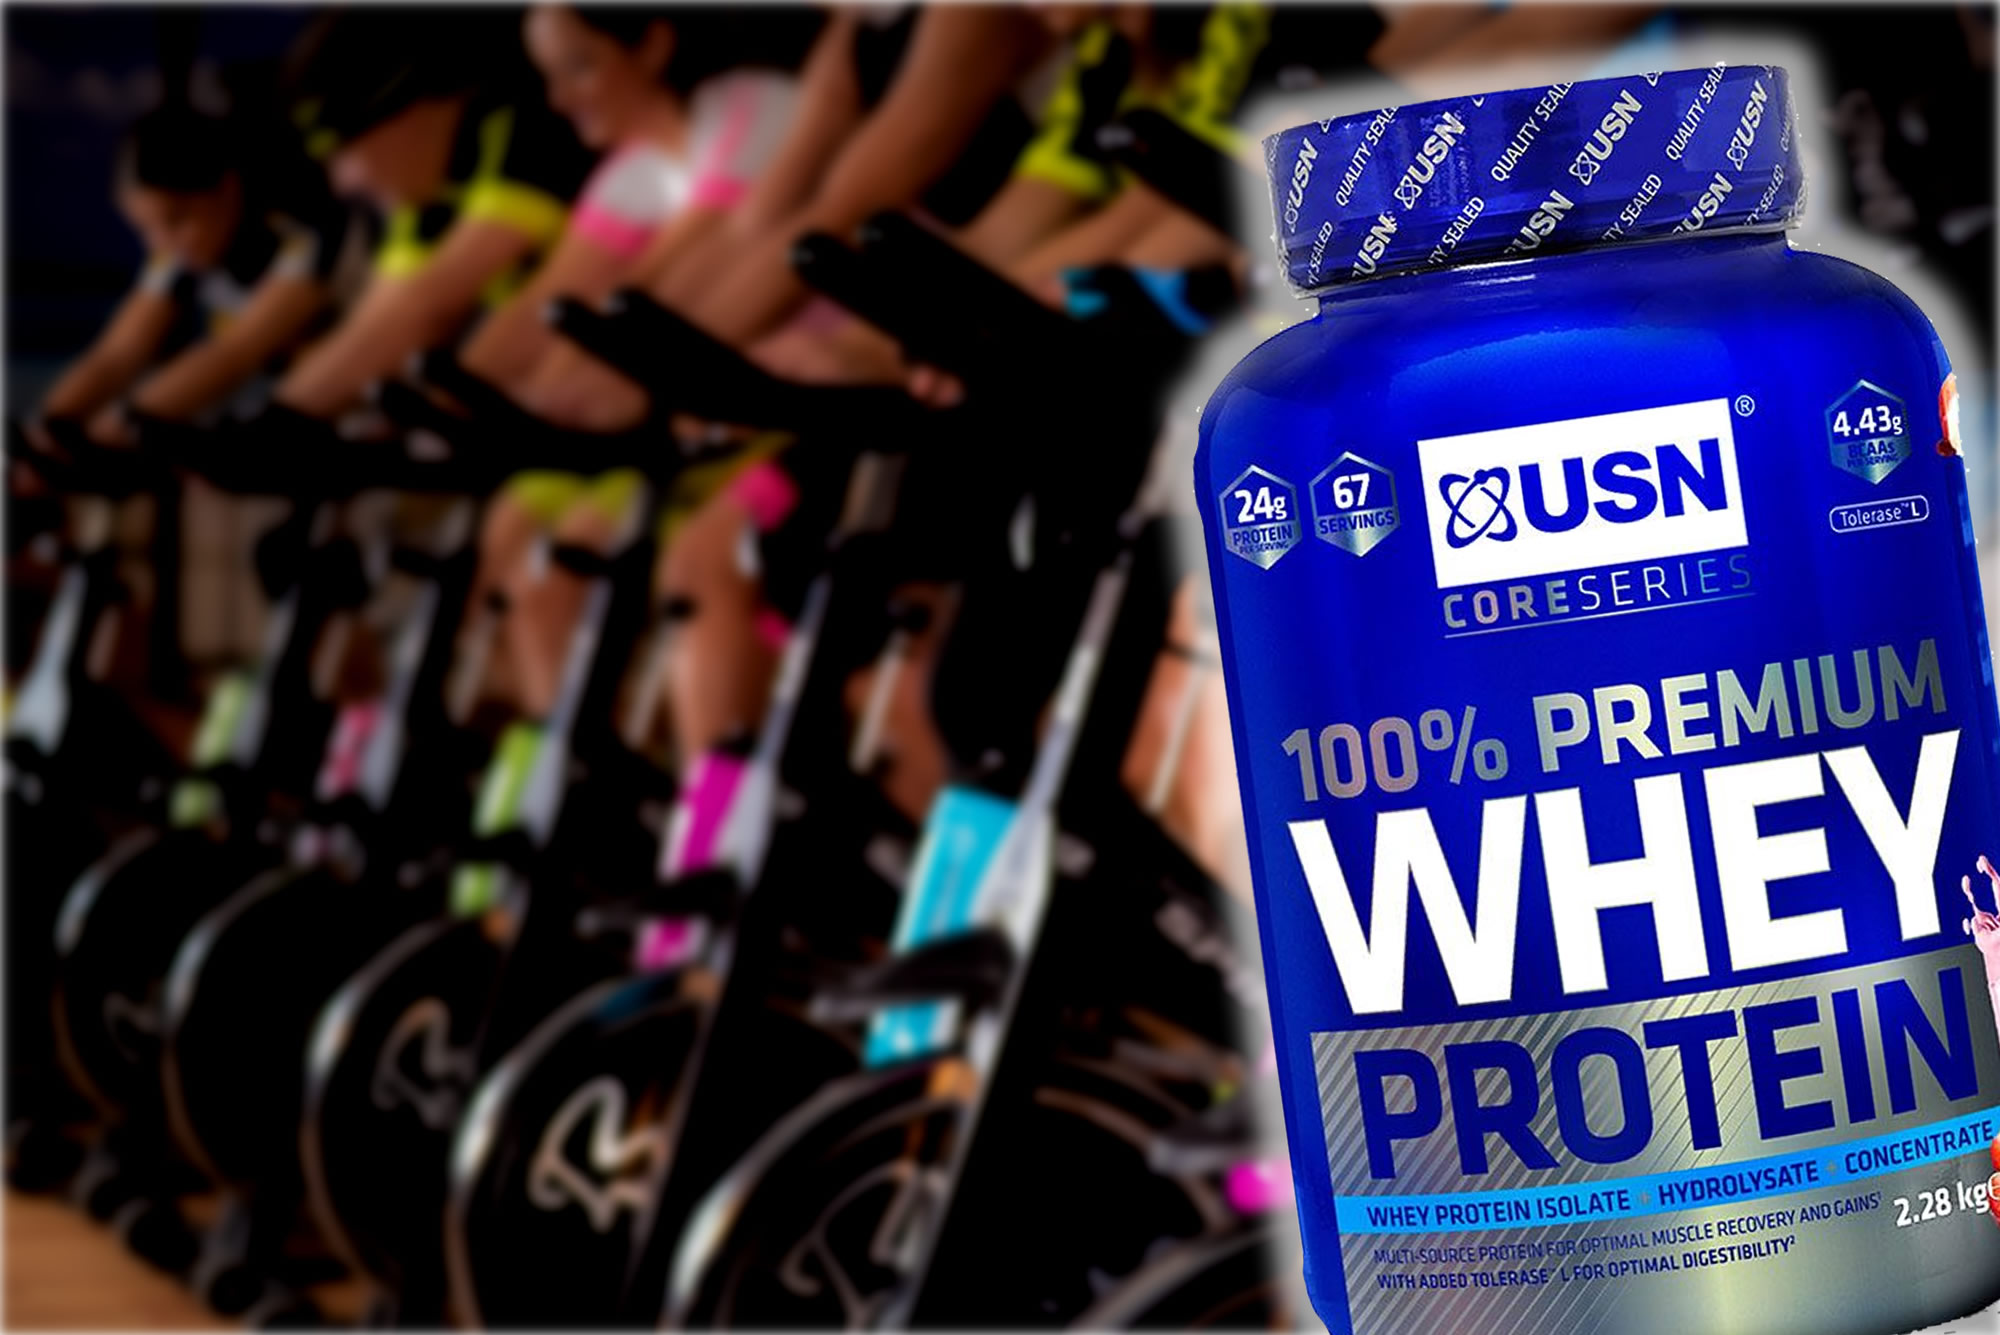 USN WHEY PRODUCTS - USN WHEY PRODUCTSdesigned to aid your overall weight management goals, boost protein levels and help maintain lean muscle in conjunction with a healthy diet and regular training.